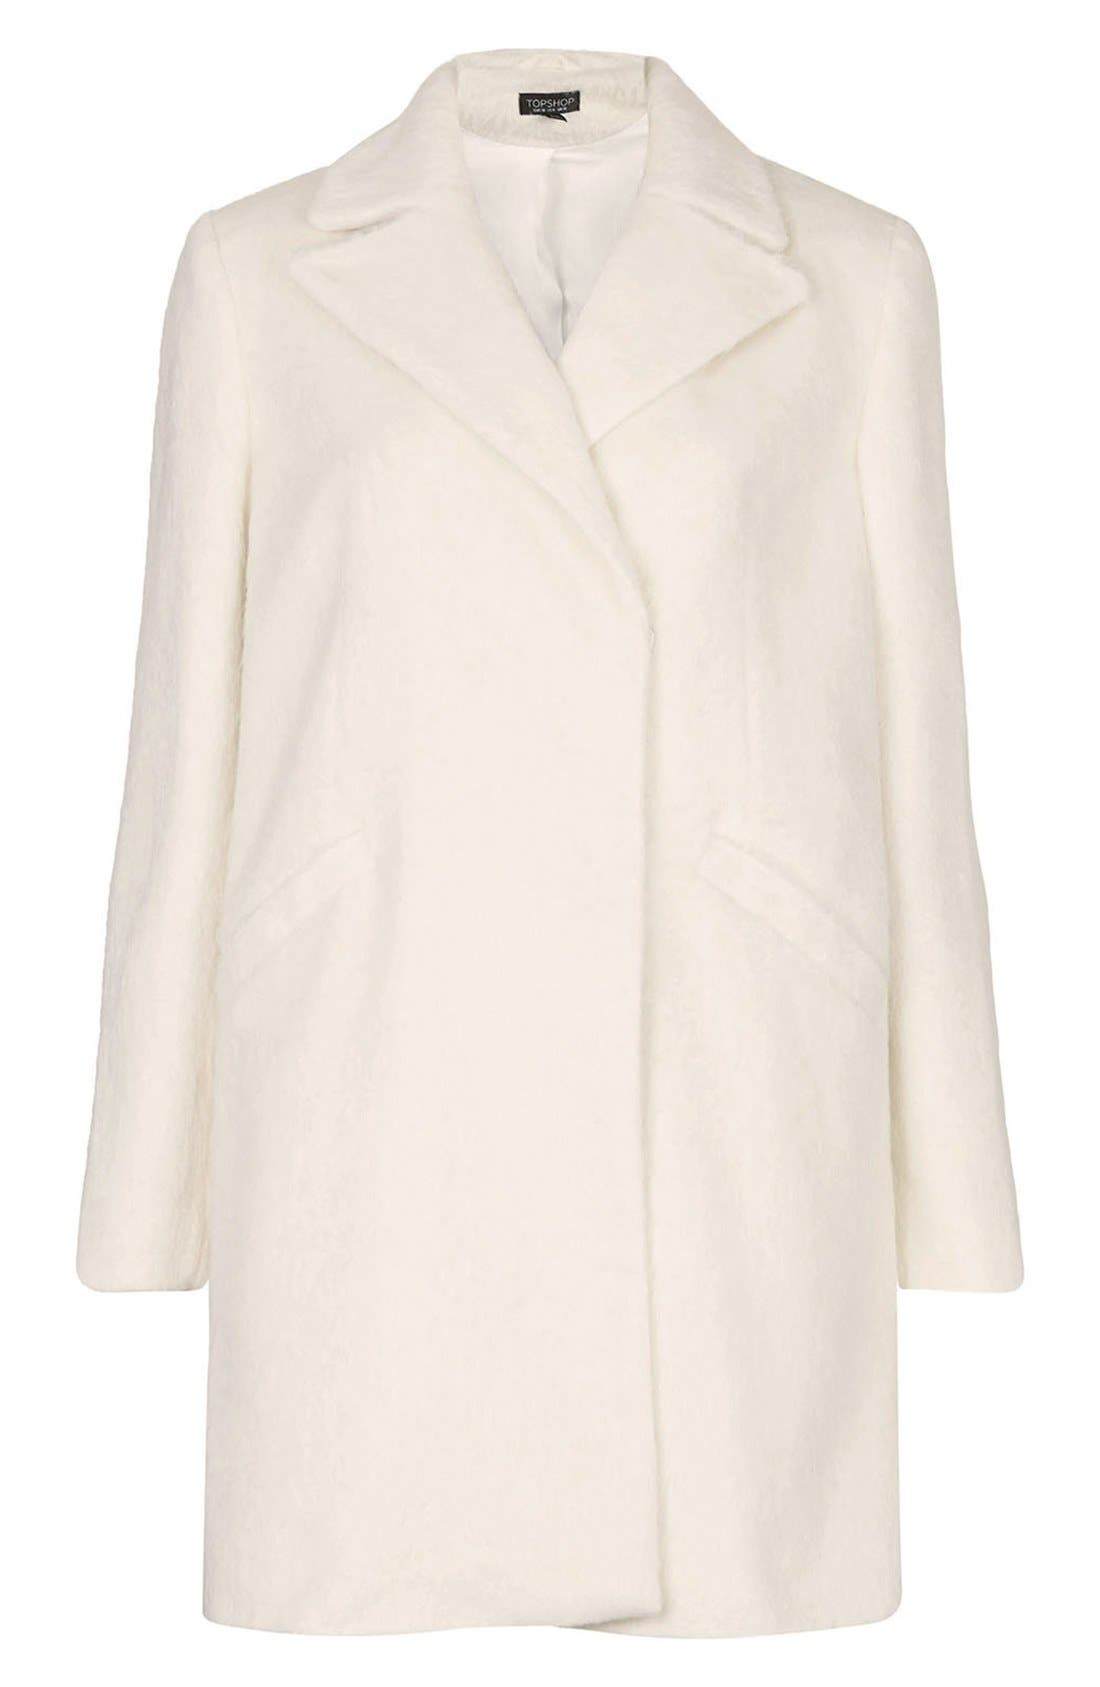 TOPSHOP,                             'Molly' Double Breasted Swing Coat,                             Alternate thumbnail 5, color,                             100